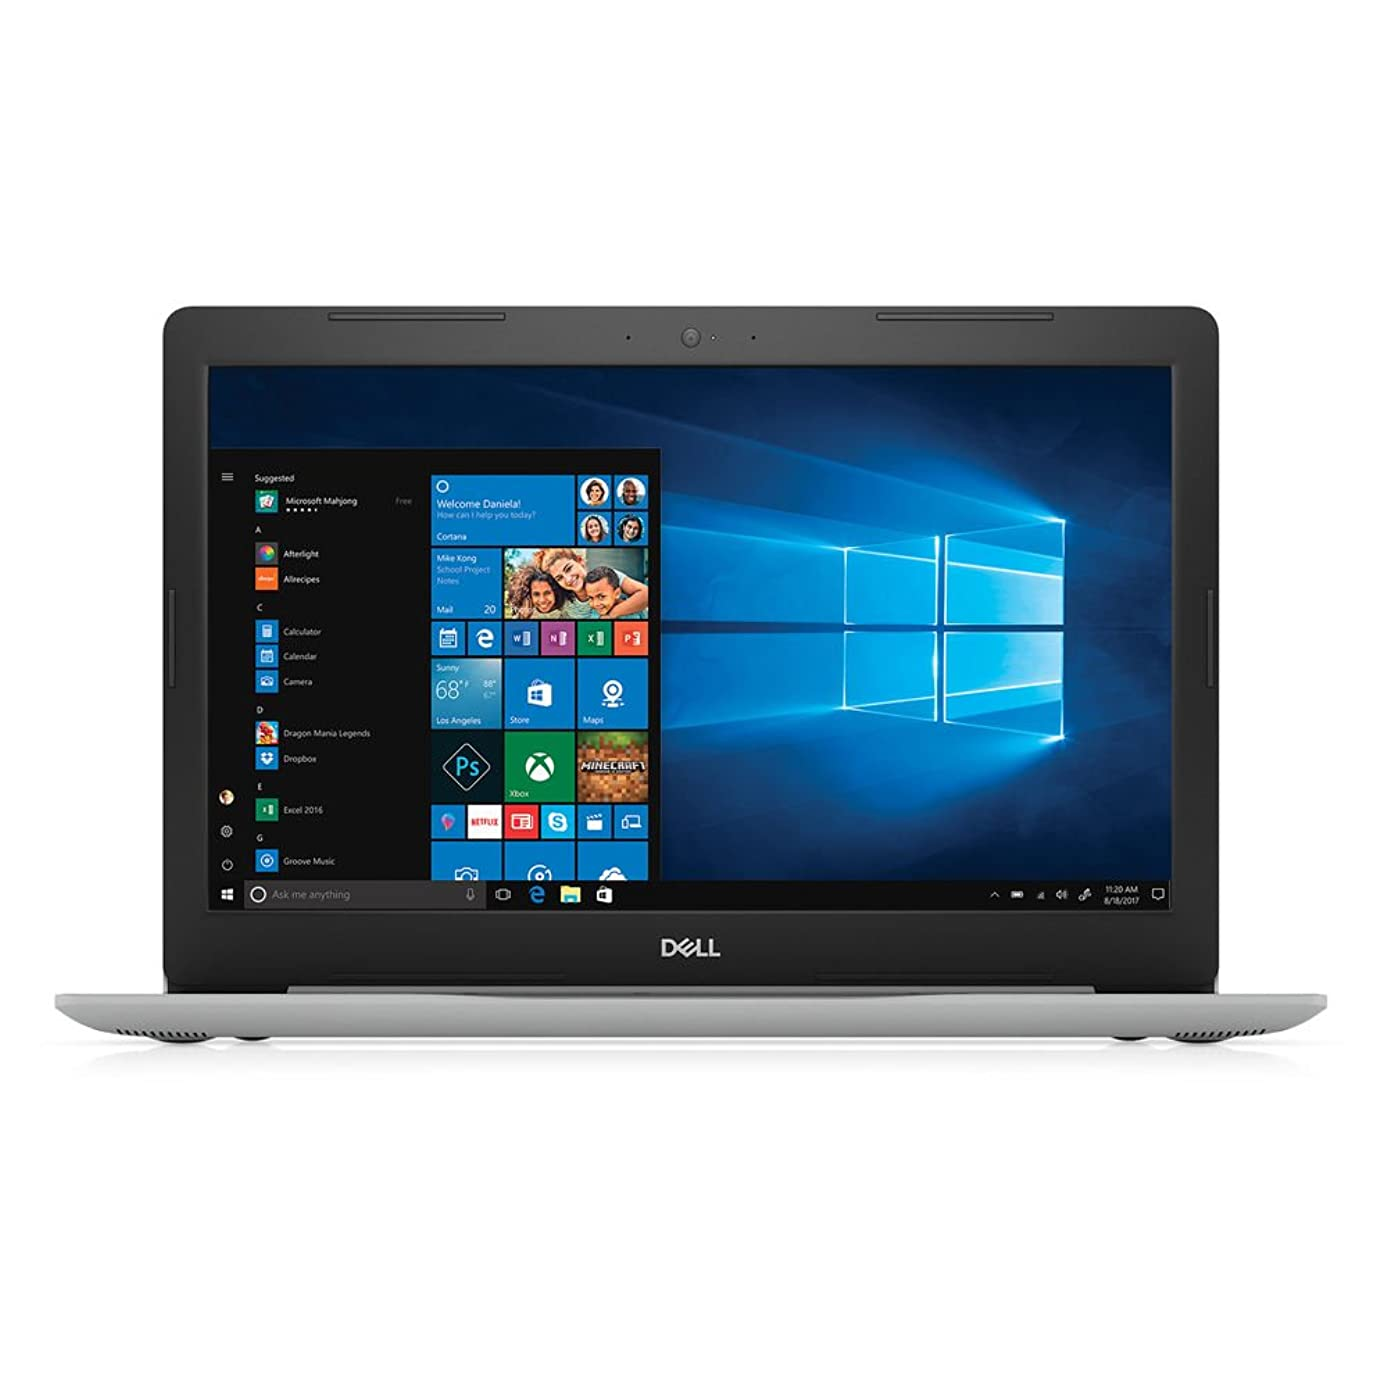 Dell Inspiron 15 5000 Laptop: Core i5-8250U, 256GB SSD, 8GB RAM, 15.6-inch Full HD Display, Windows 10